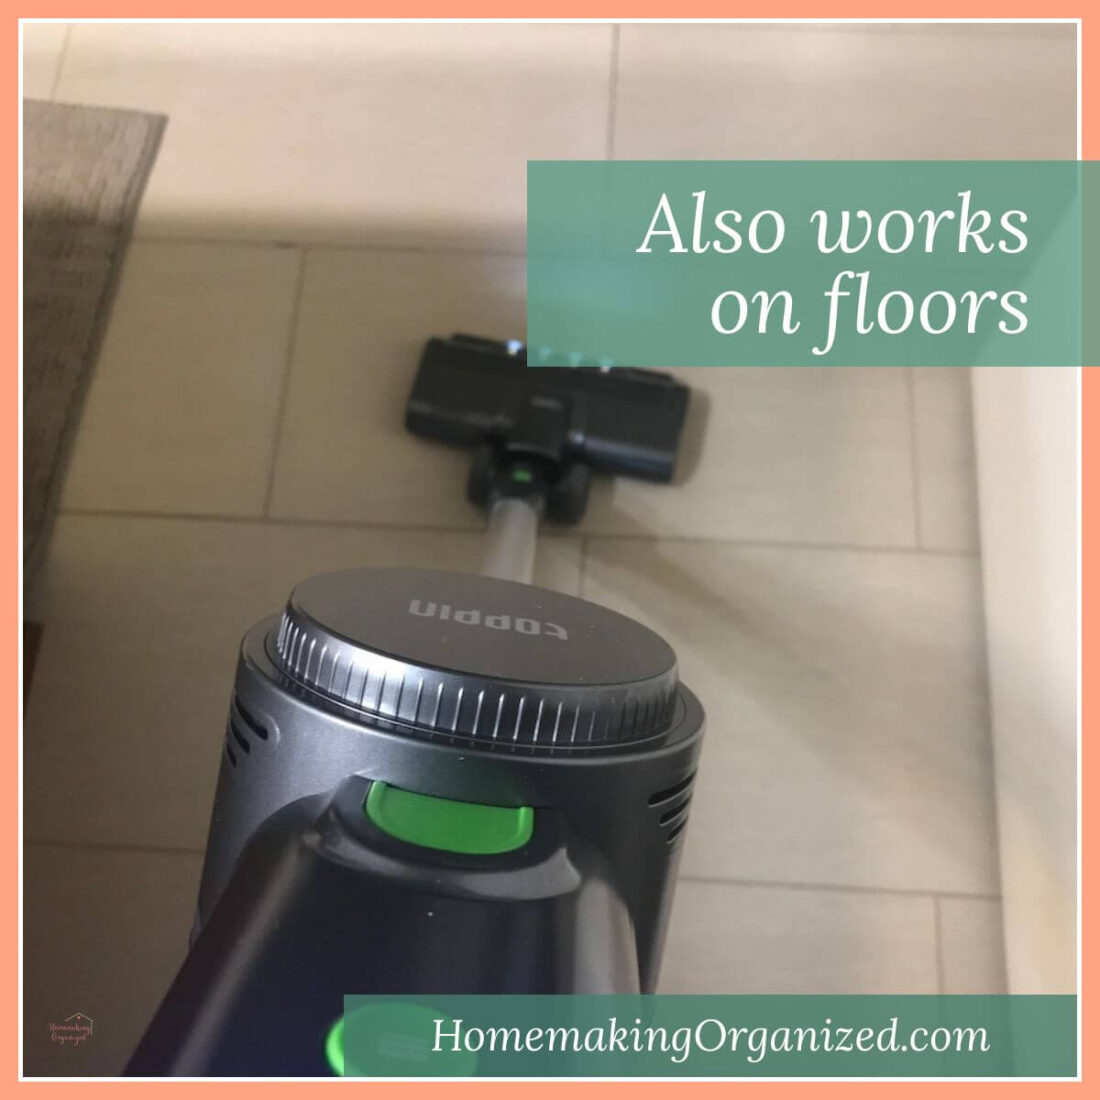 TOPPIN Powerful Cordless Stick Vacuum works on floors